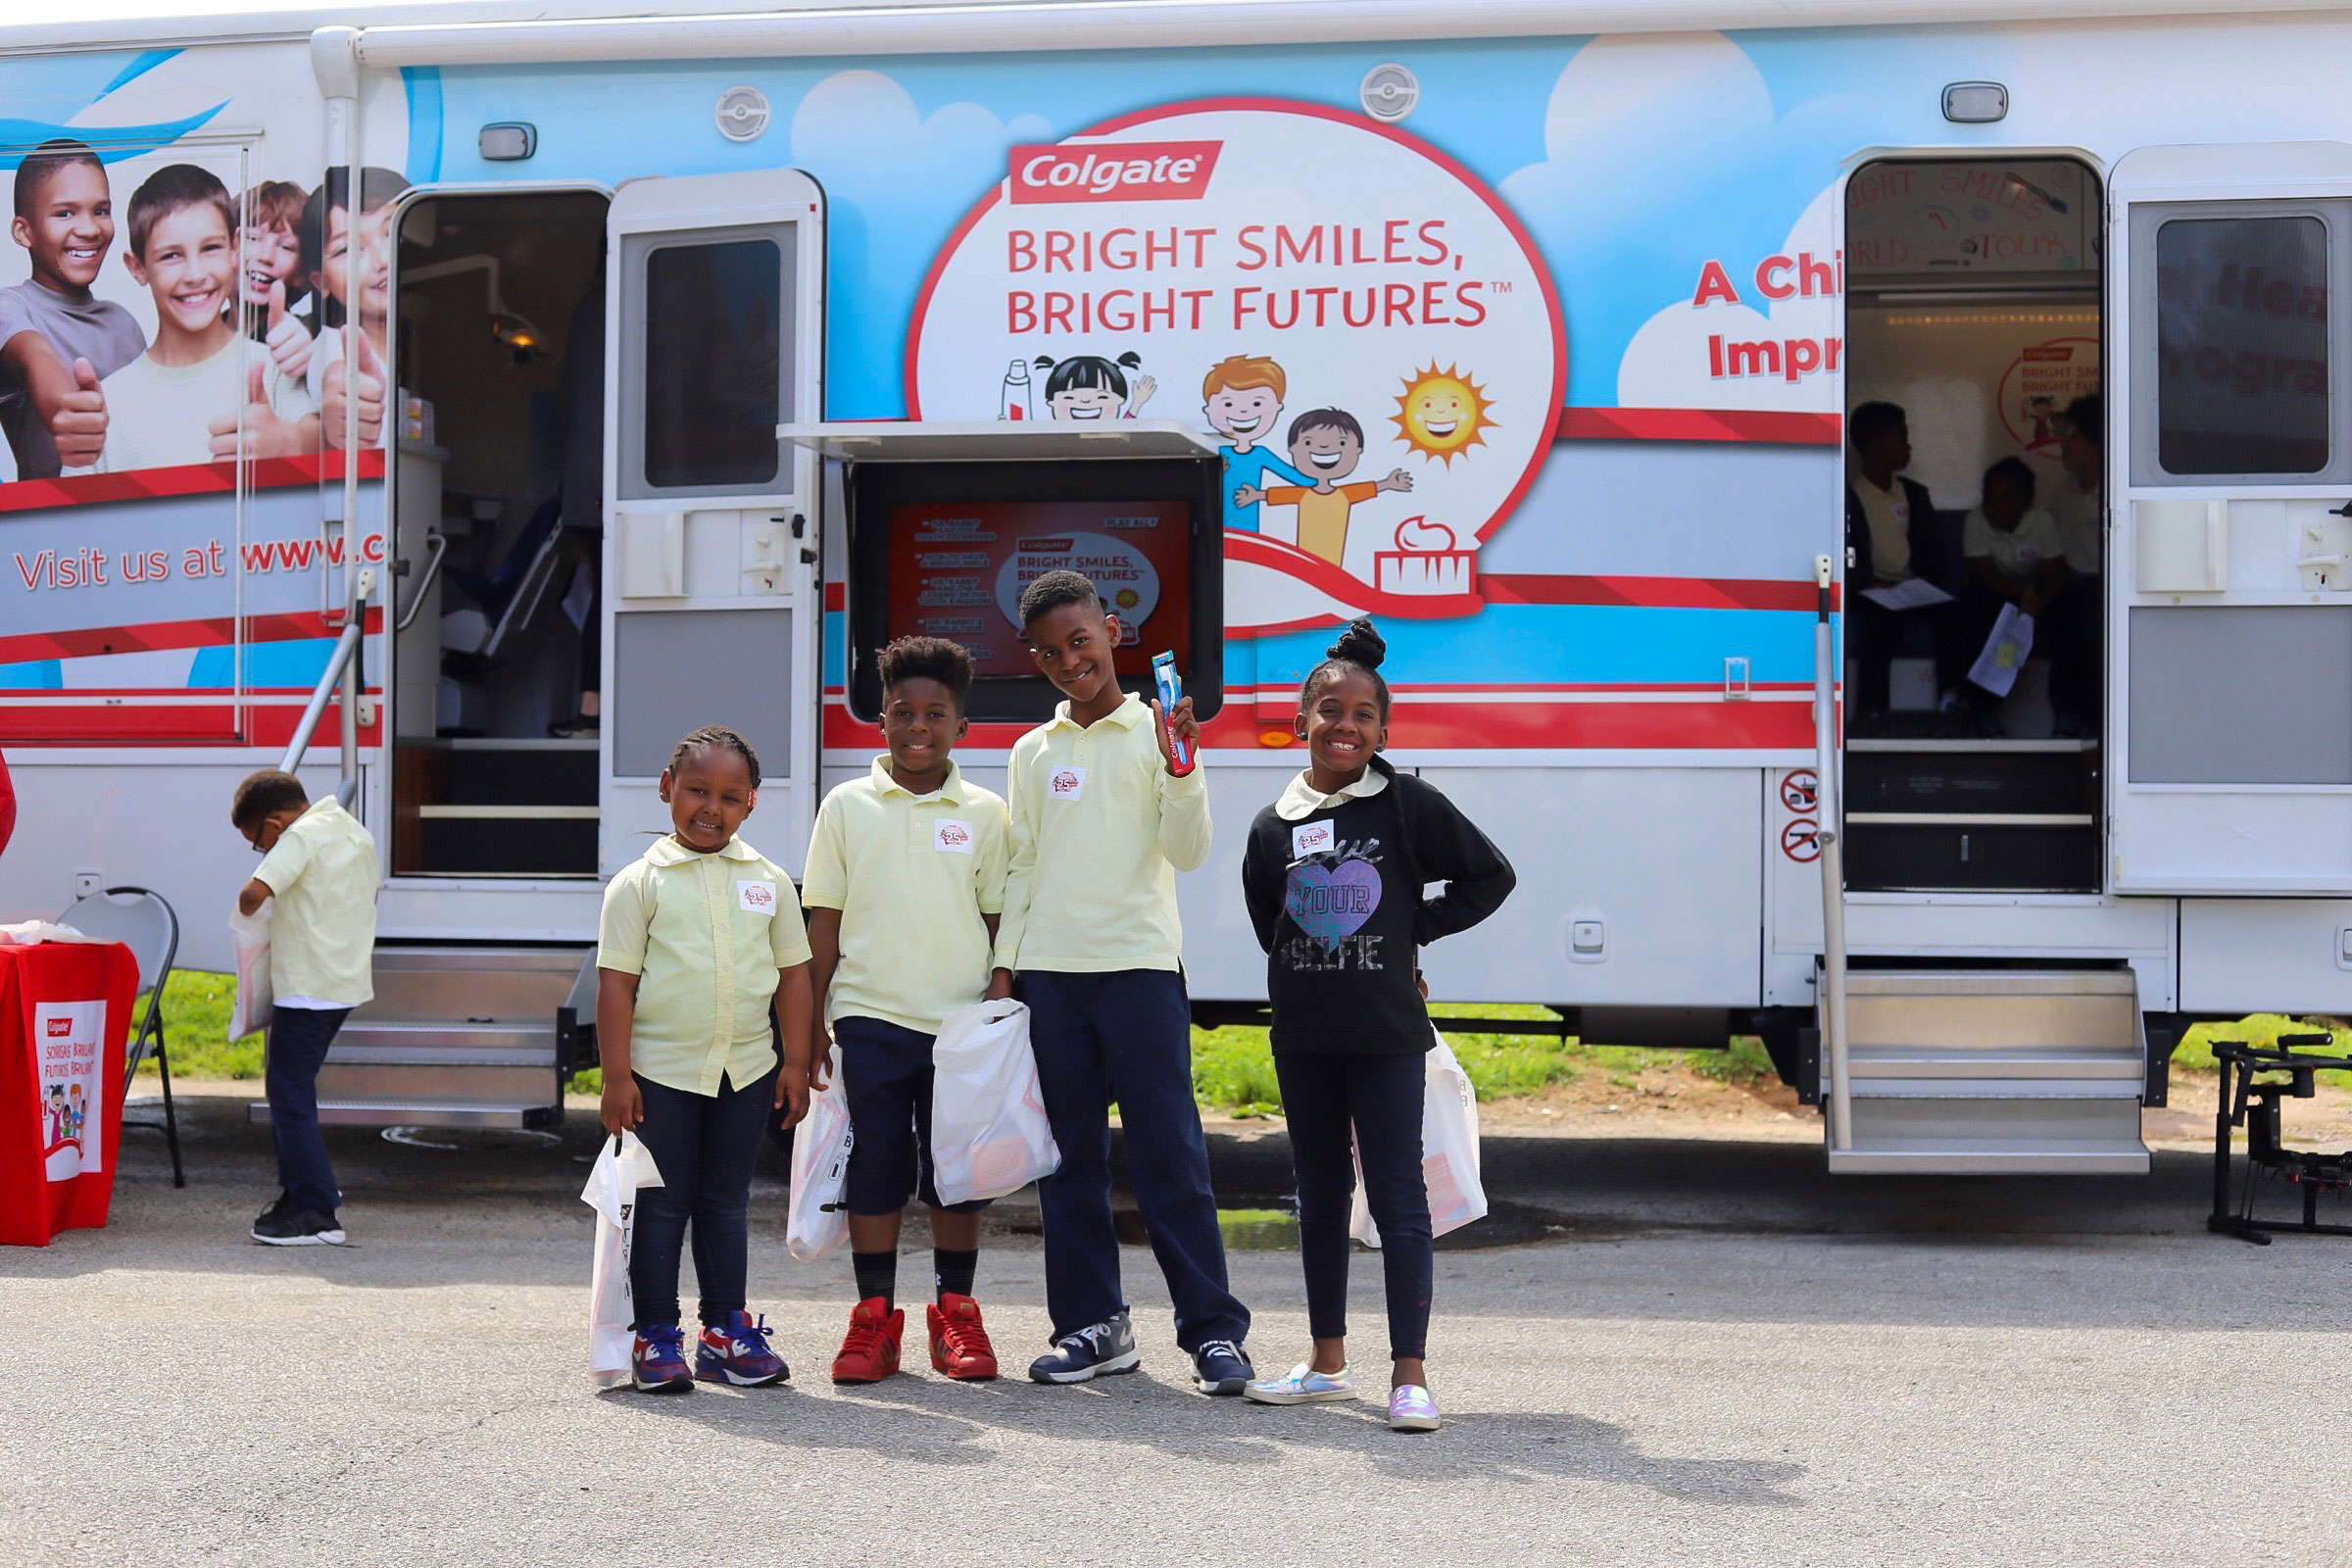 Colgate Bright Smiles, Bright Futures® Sets its Sights on the Next Billion Smiles